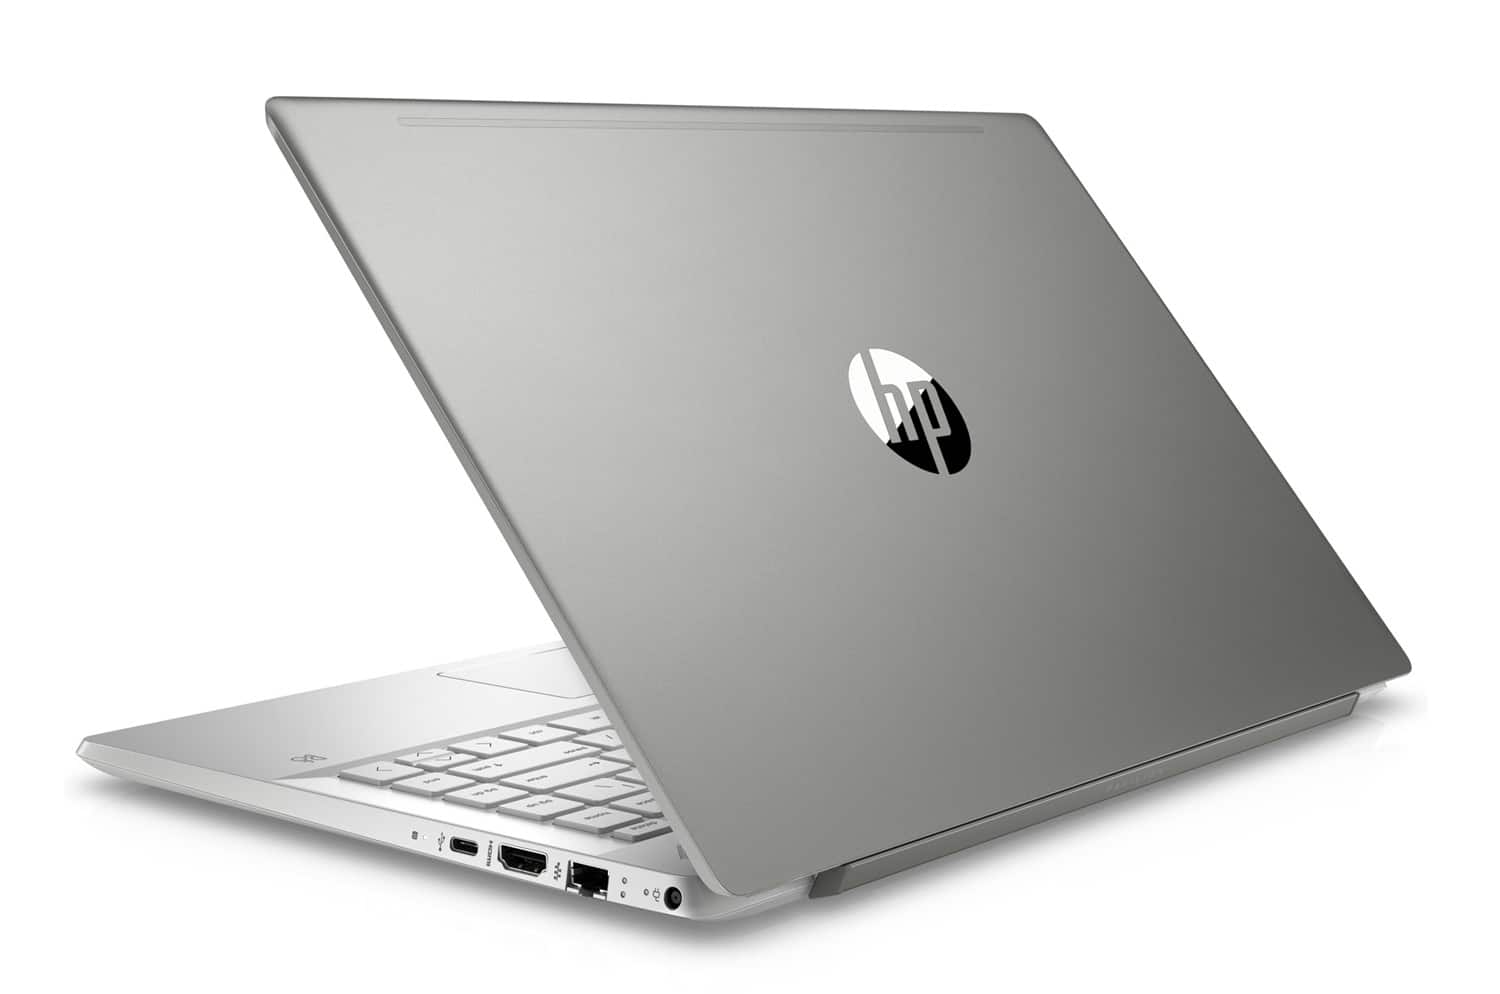 """HP 14-ce1008nf, Ultrabook 14"""" rapide léger gros stockage (769€)"""